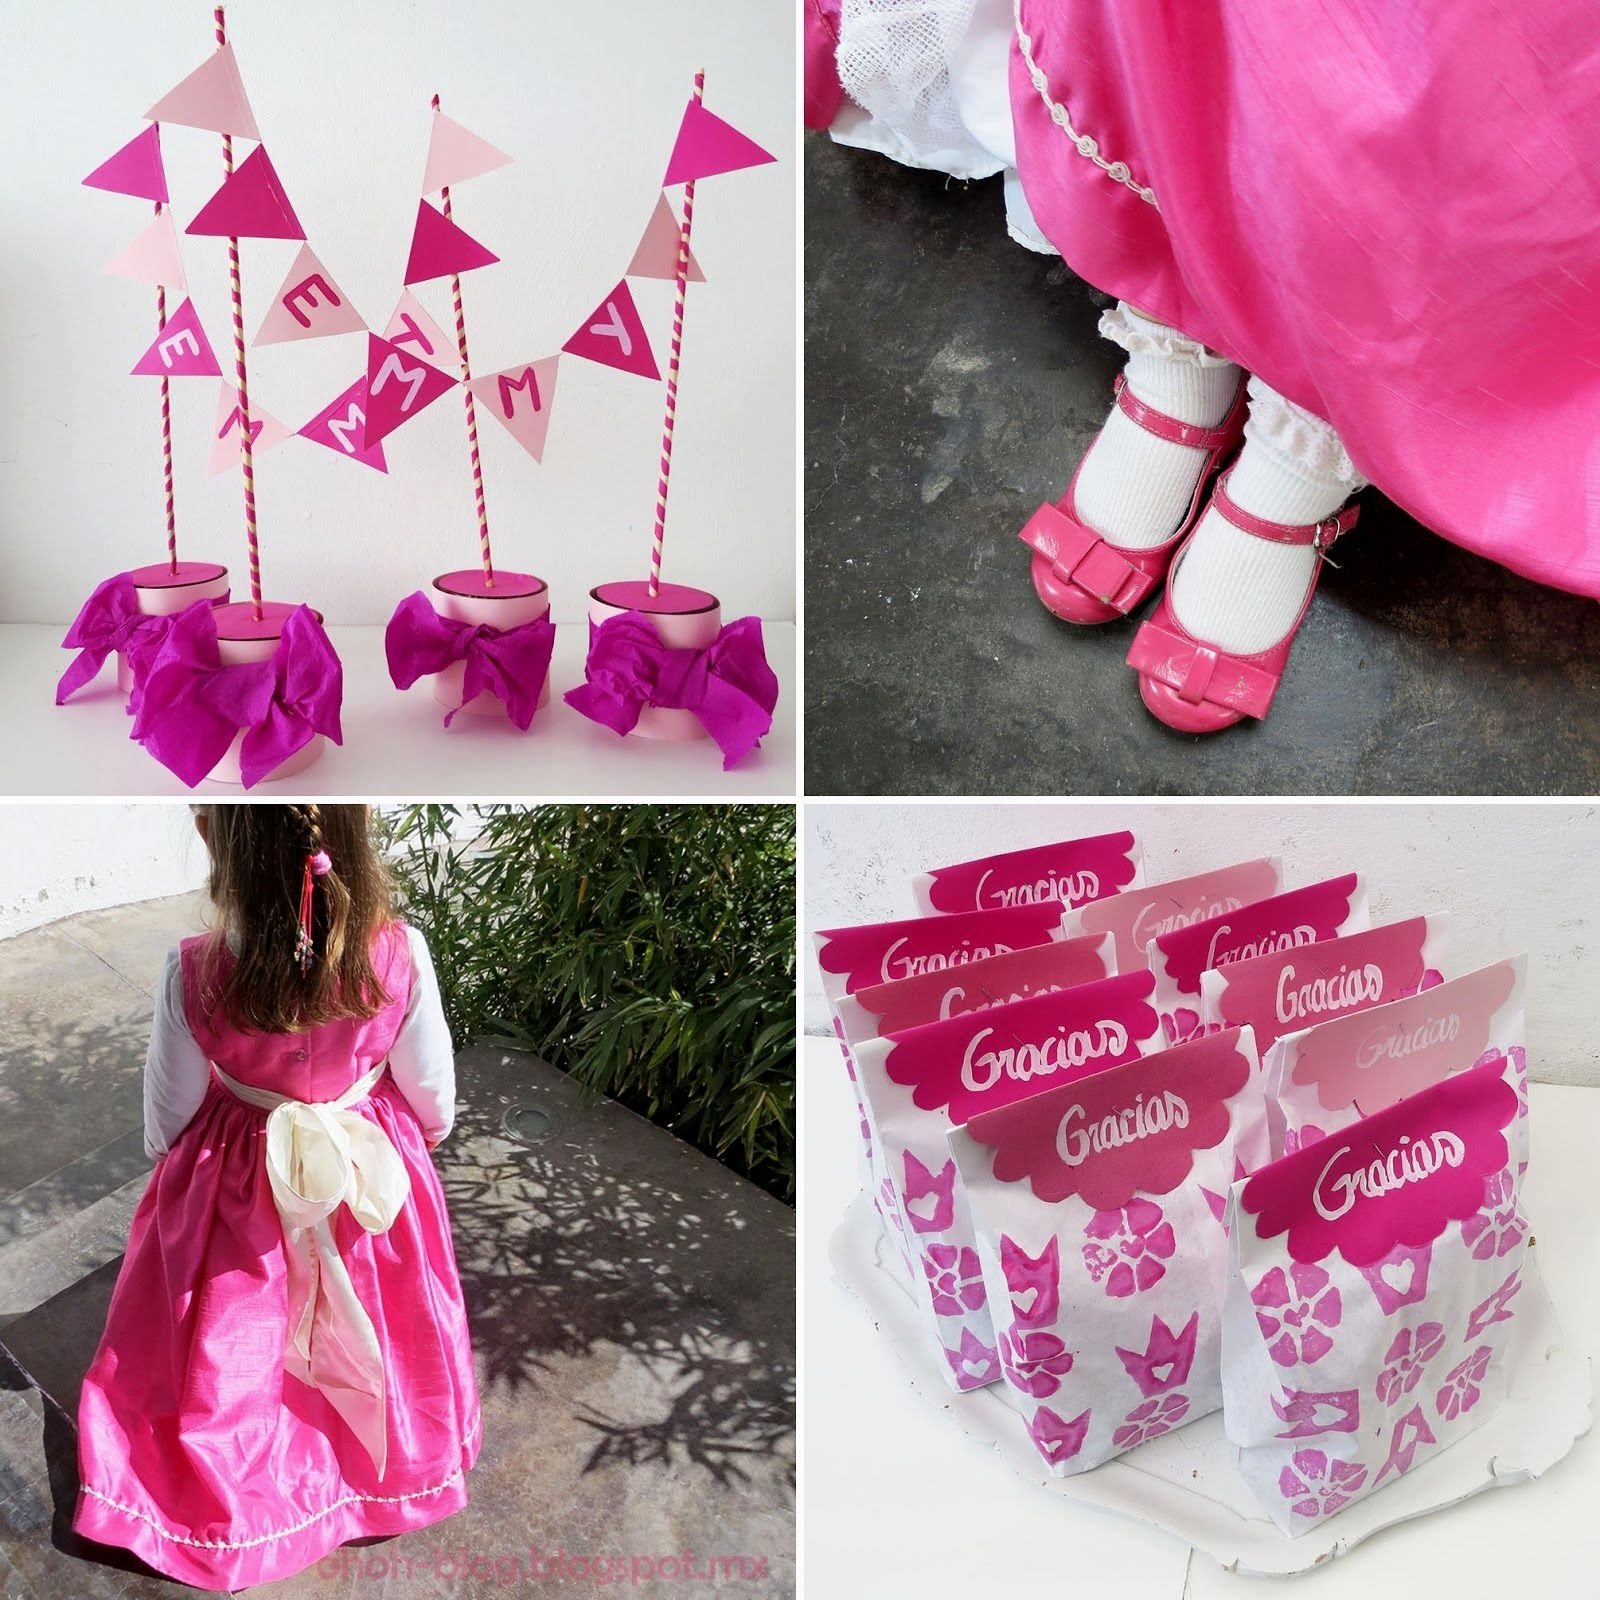 10 Unique Princess Party Ideas For 4 Year Old princess birthday party ideas for 4 year girl archives decorating 2020